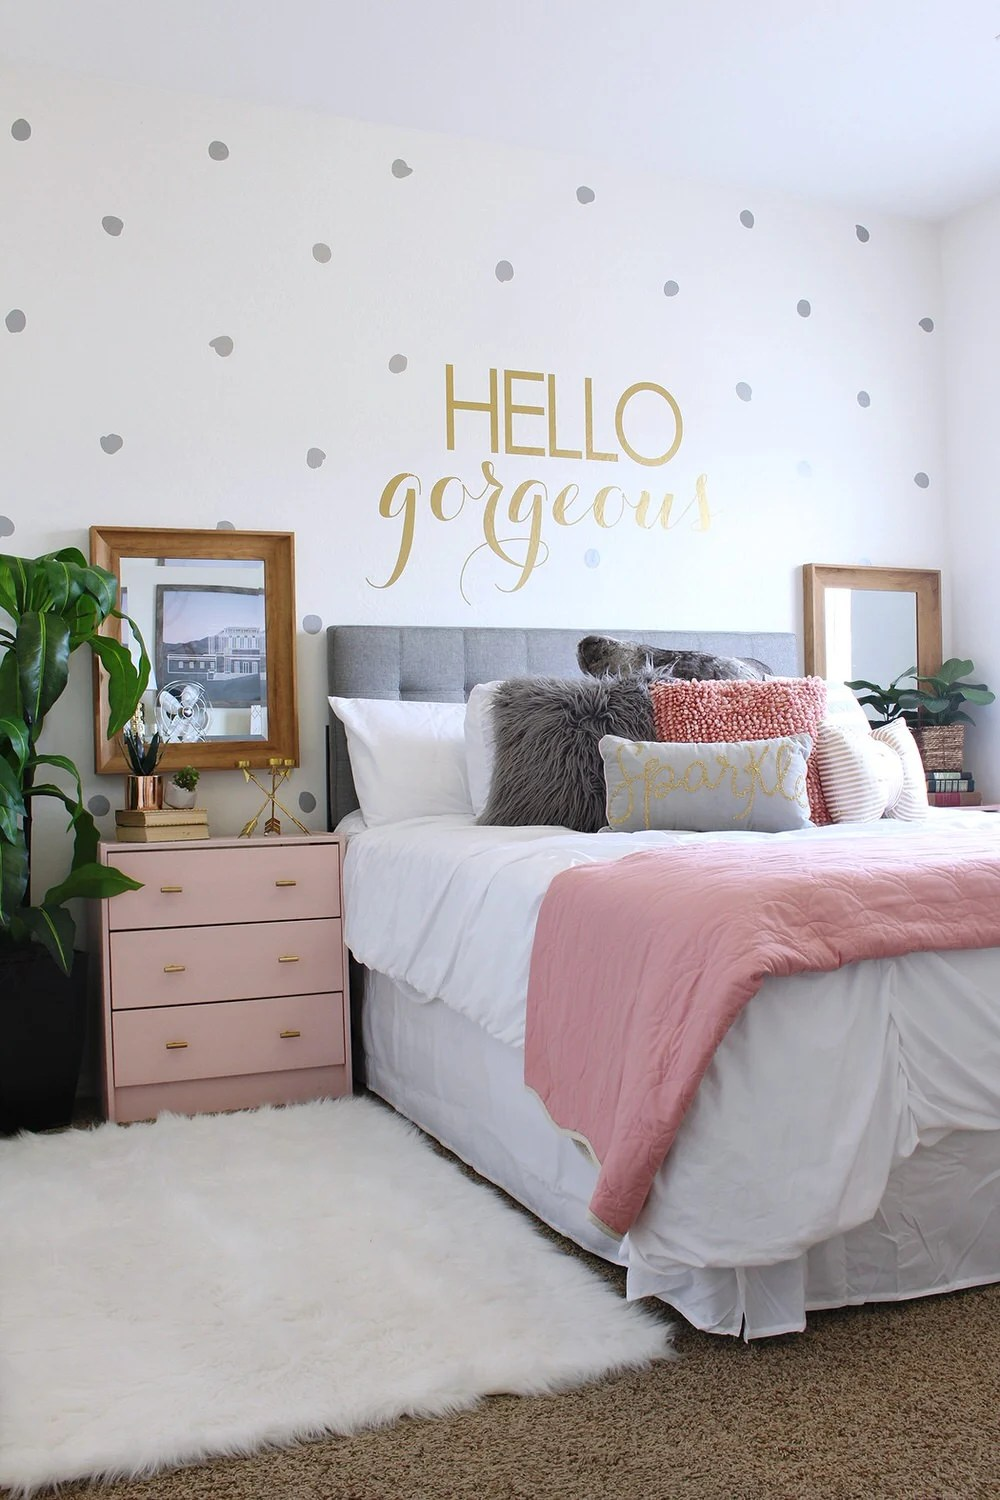 Teen Bedroom Decorating Tips, Tricks & Projects • The ... on Room Decor For Teenagers  id=43859